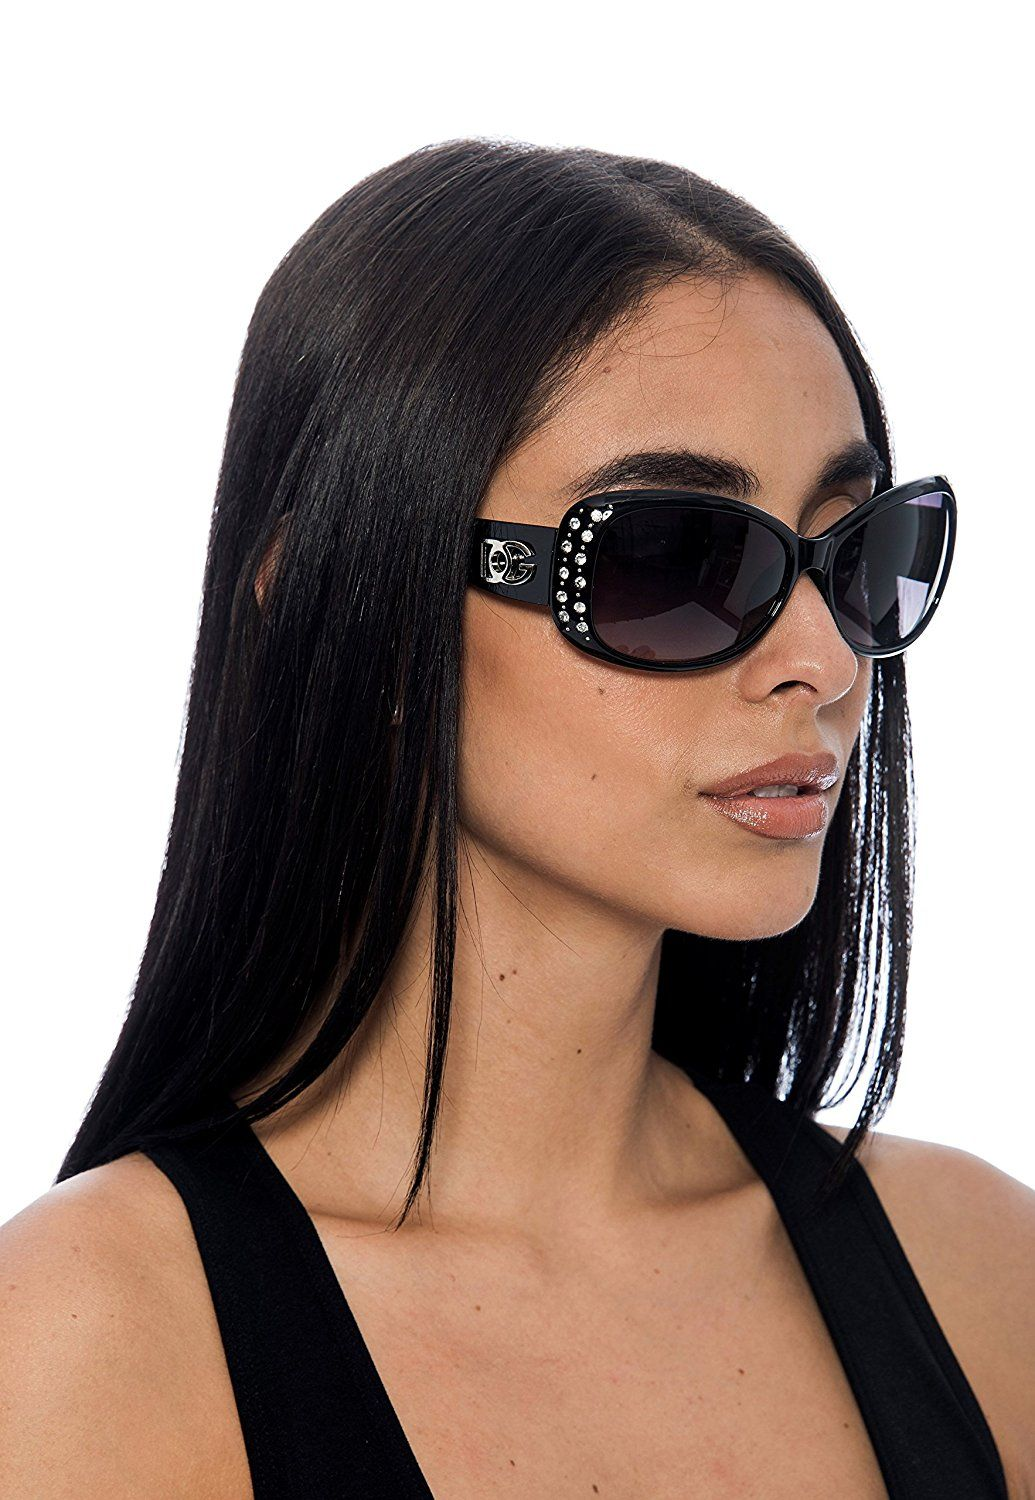 5ad332eb9d8c DG Sunglasses for Women Oversized Eyewear Fashion - Assorted Styles & Colors